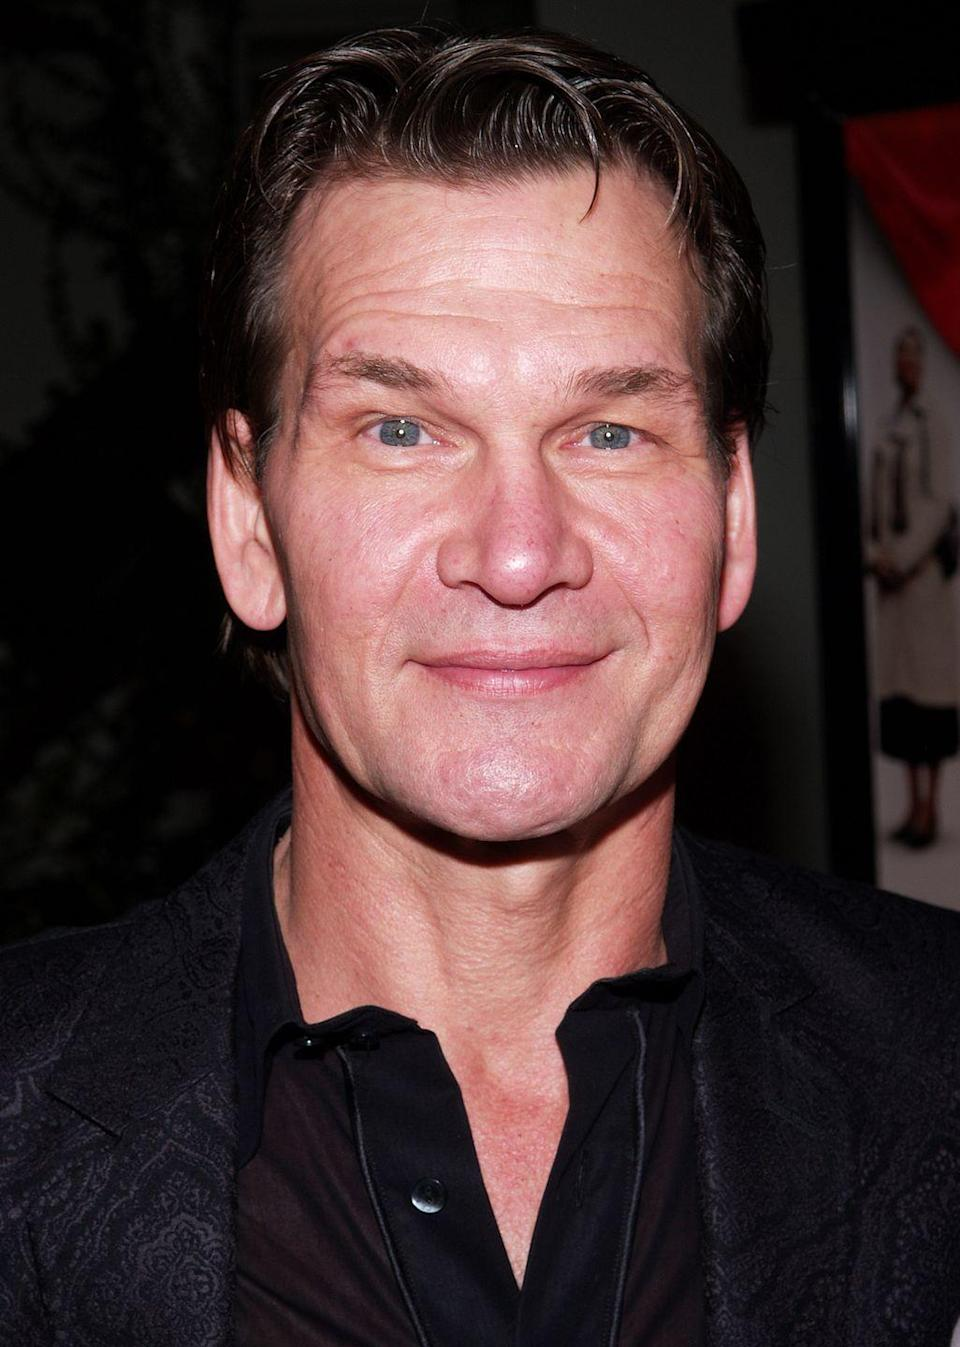 "<p>Though the actor sadly died after being diagnosed with pancreatic cancer, people have said they remember him <em>recovering</em>. </p><p><strong>RELATED:</strong> <a href=""https://www.goodhousekeeping.com/life/entertainment/a34988/dirty-dancing-trivia/"" rel=""nofollow noopener"" target=""_blank"" data-ylk=""slk:11 Things You Didn't Know About &quot;Dirty Dancing&quot;"" class=""link rapid-noclick-resp"">11 Things You Didn't Know About ""Dirty Dancing""</a></p>"